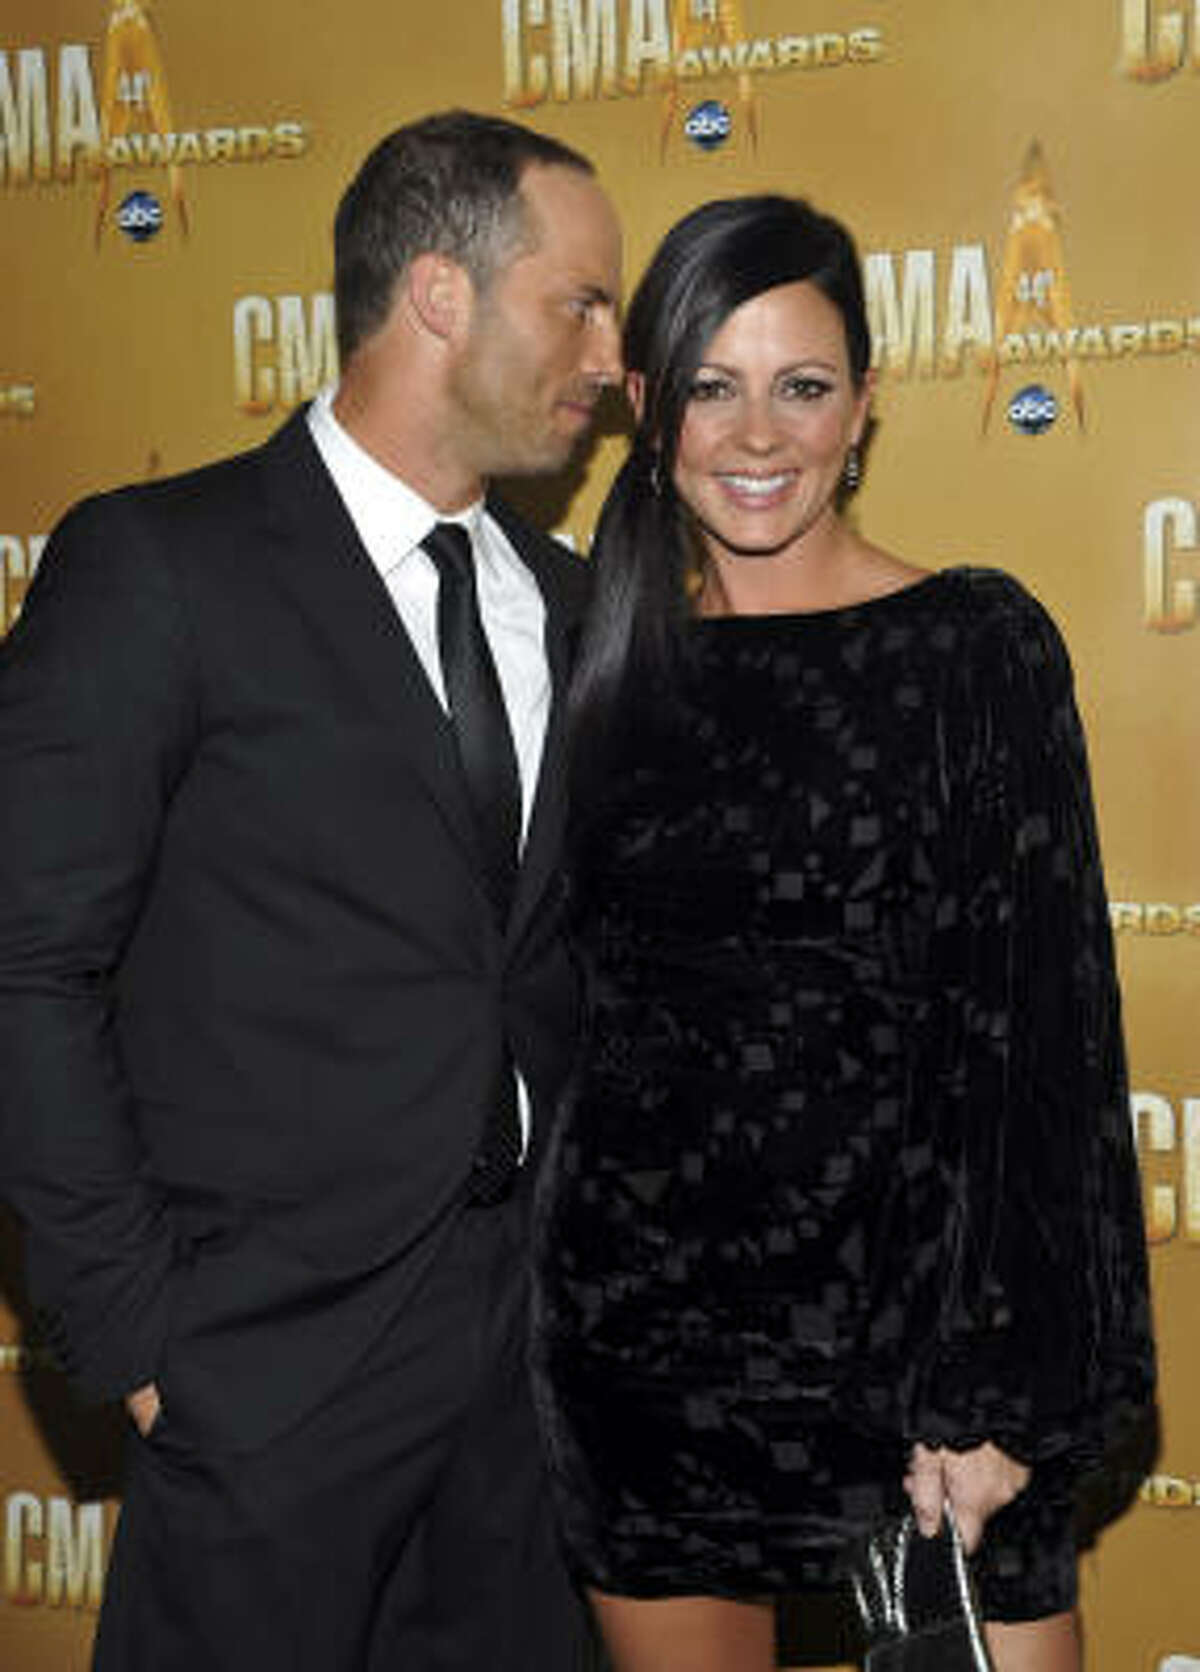 Country star Sara Evans and her husband, Jay Barker